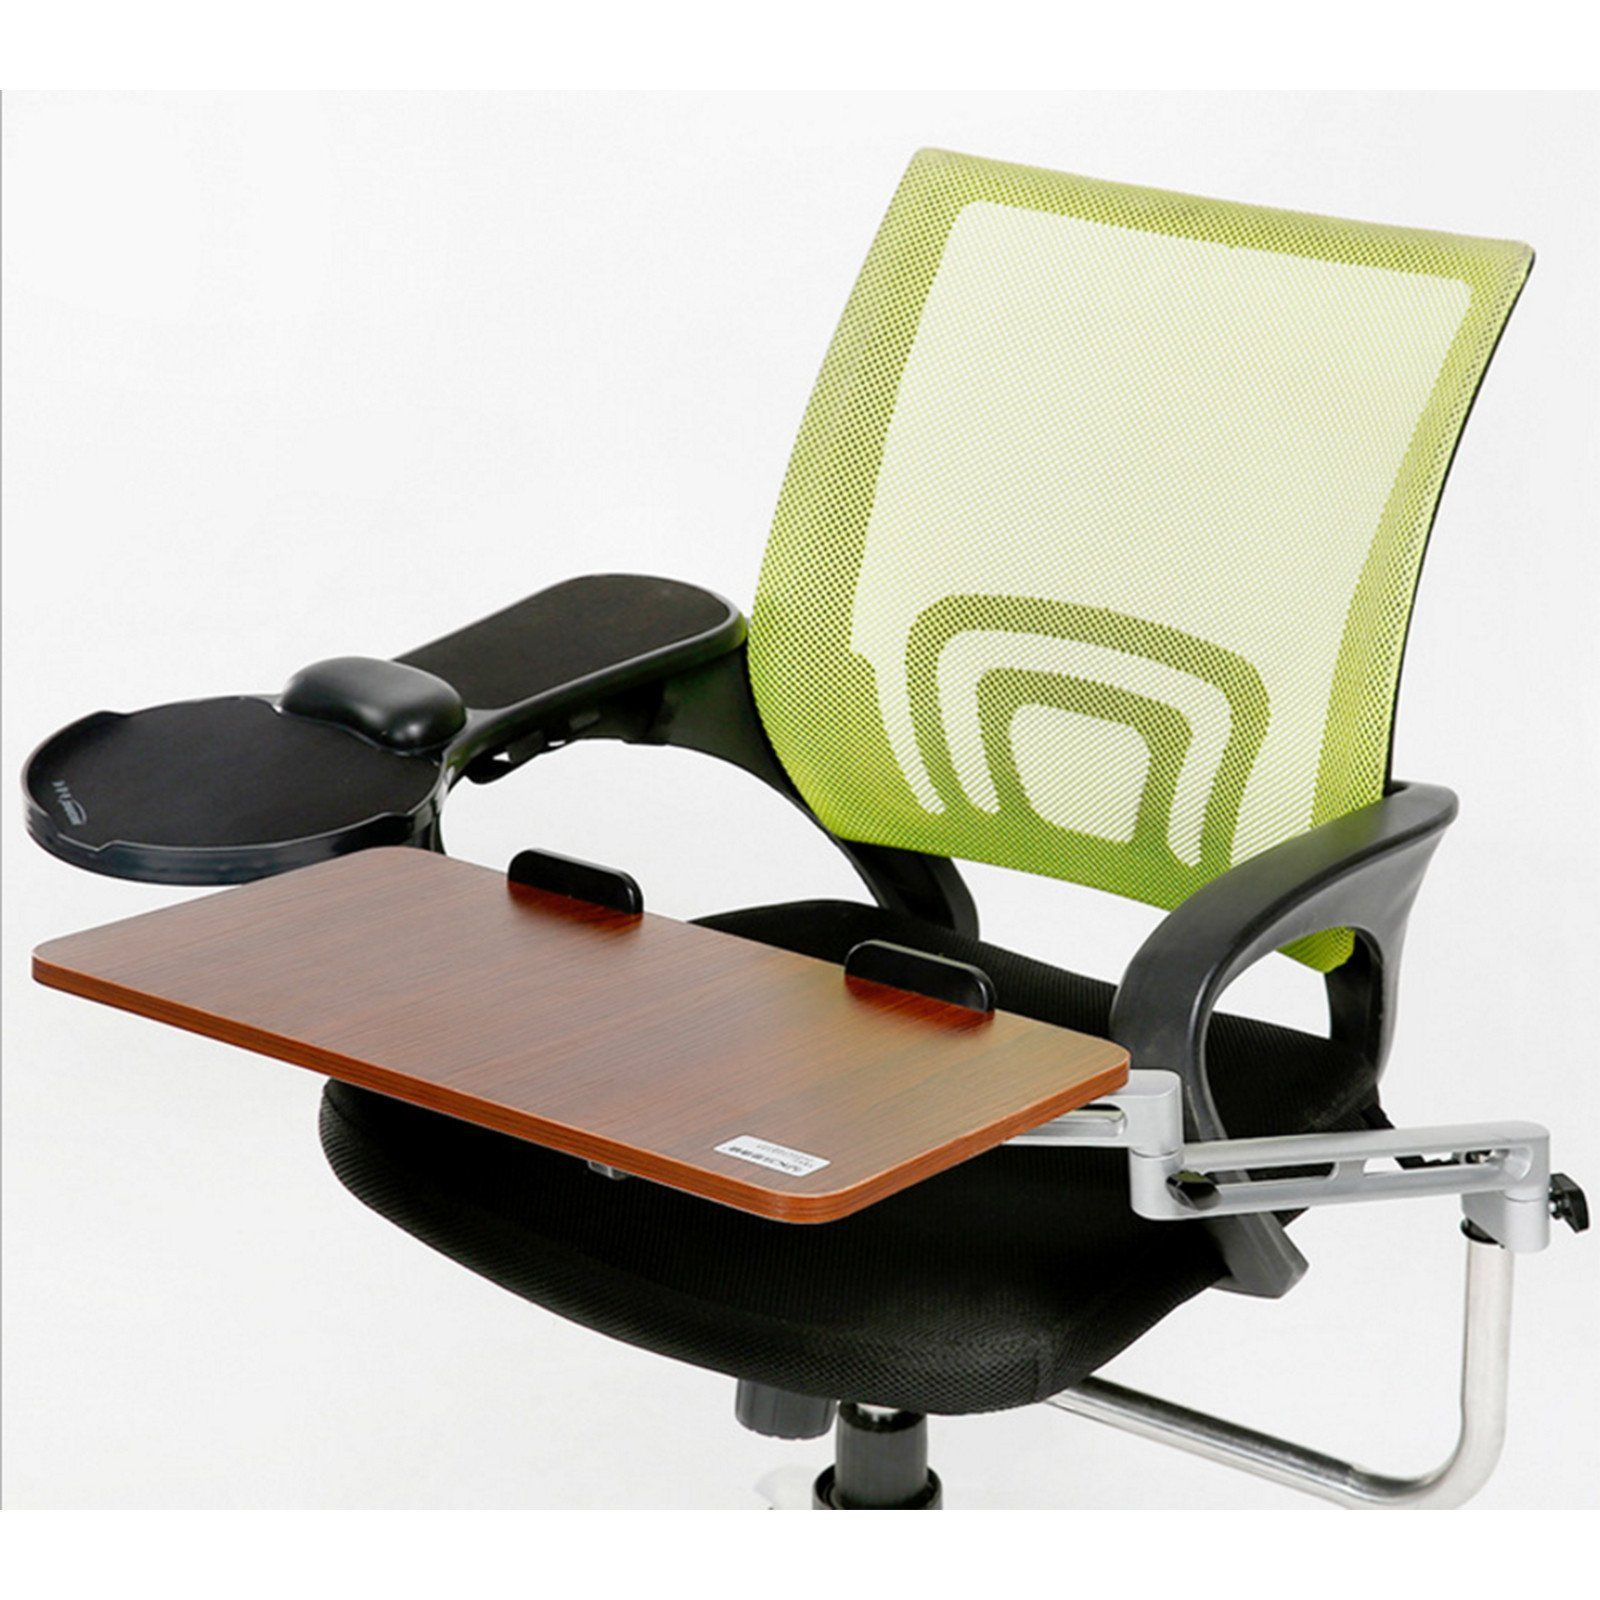 ergonomic chair attachment top 10 high chairs canada mount laptop keyboard mouse tray system